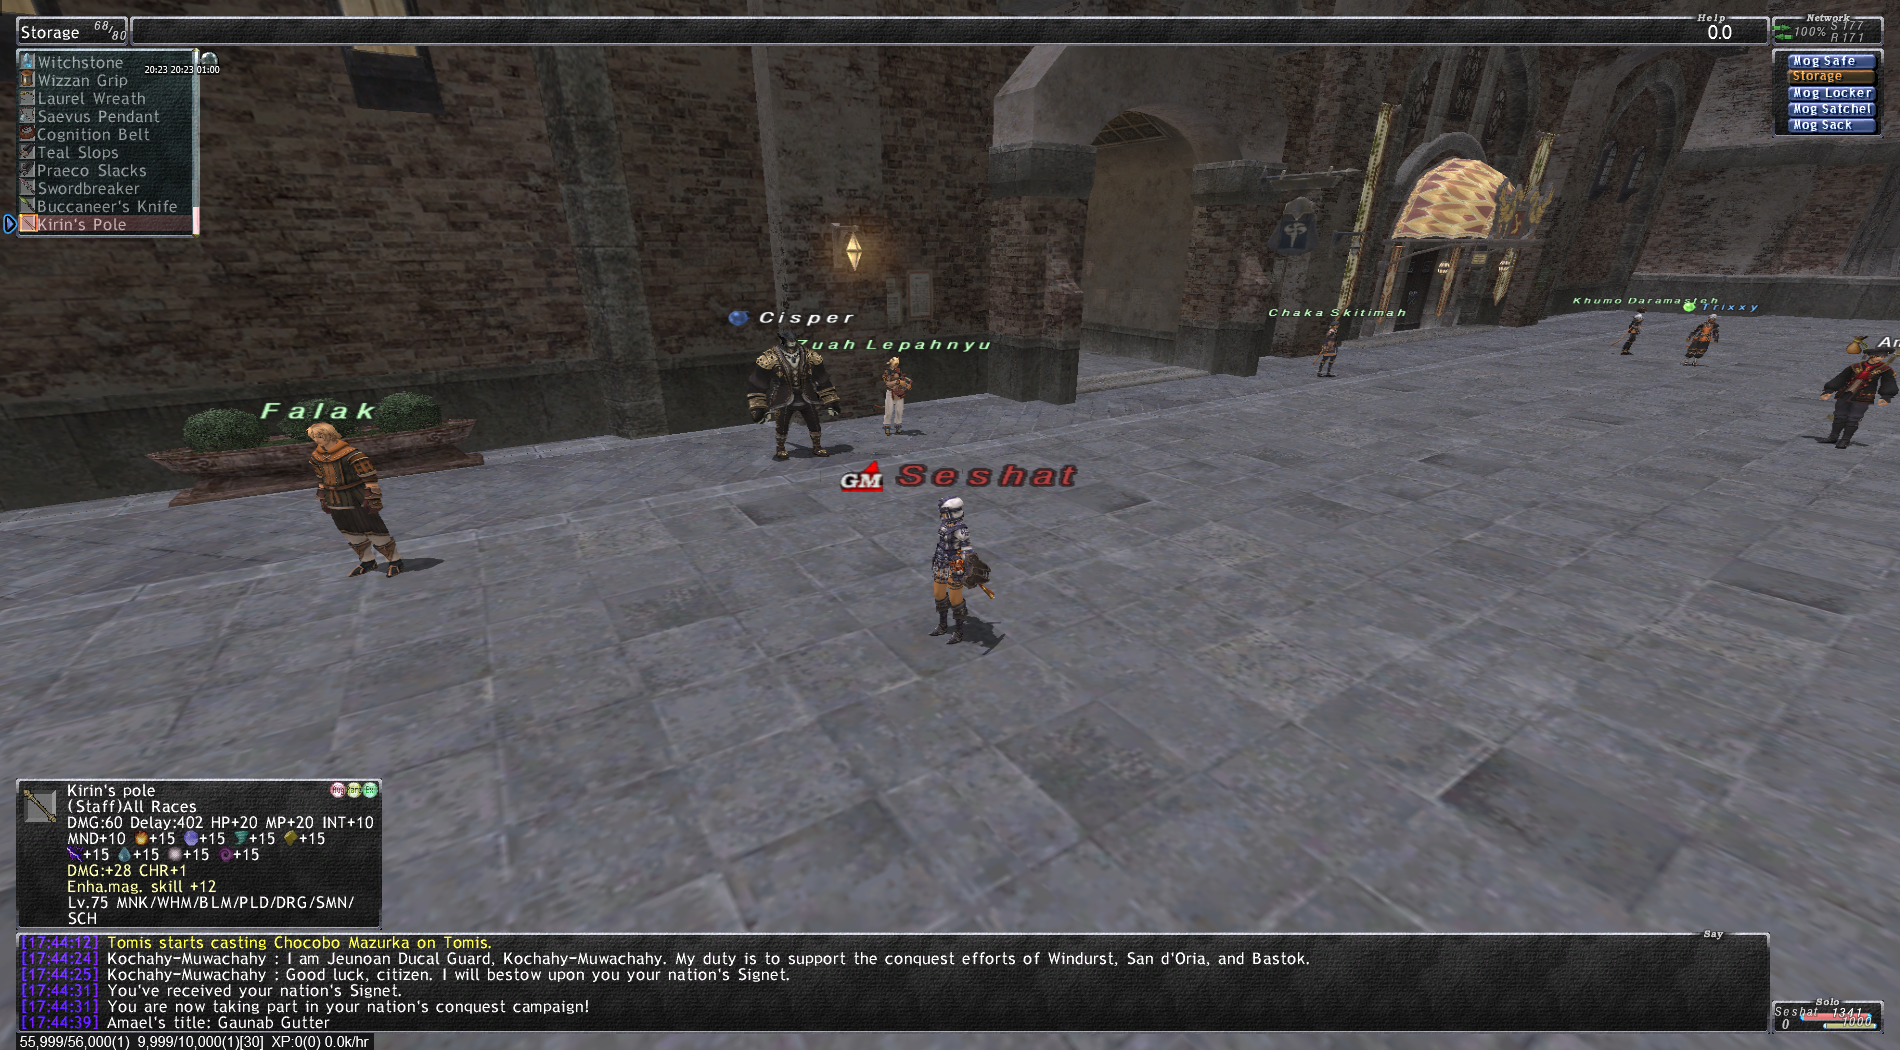 seshat ffxi augment with stone after shit your breaking ended posted whats augments nekodance overshooting wiki magic attack bonus decided skirmish show augmented items staff post went today lucky